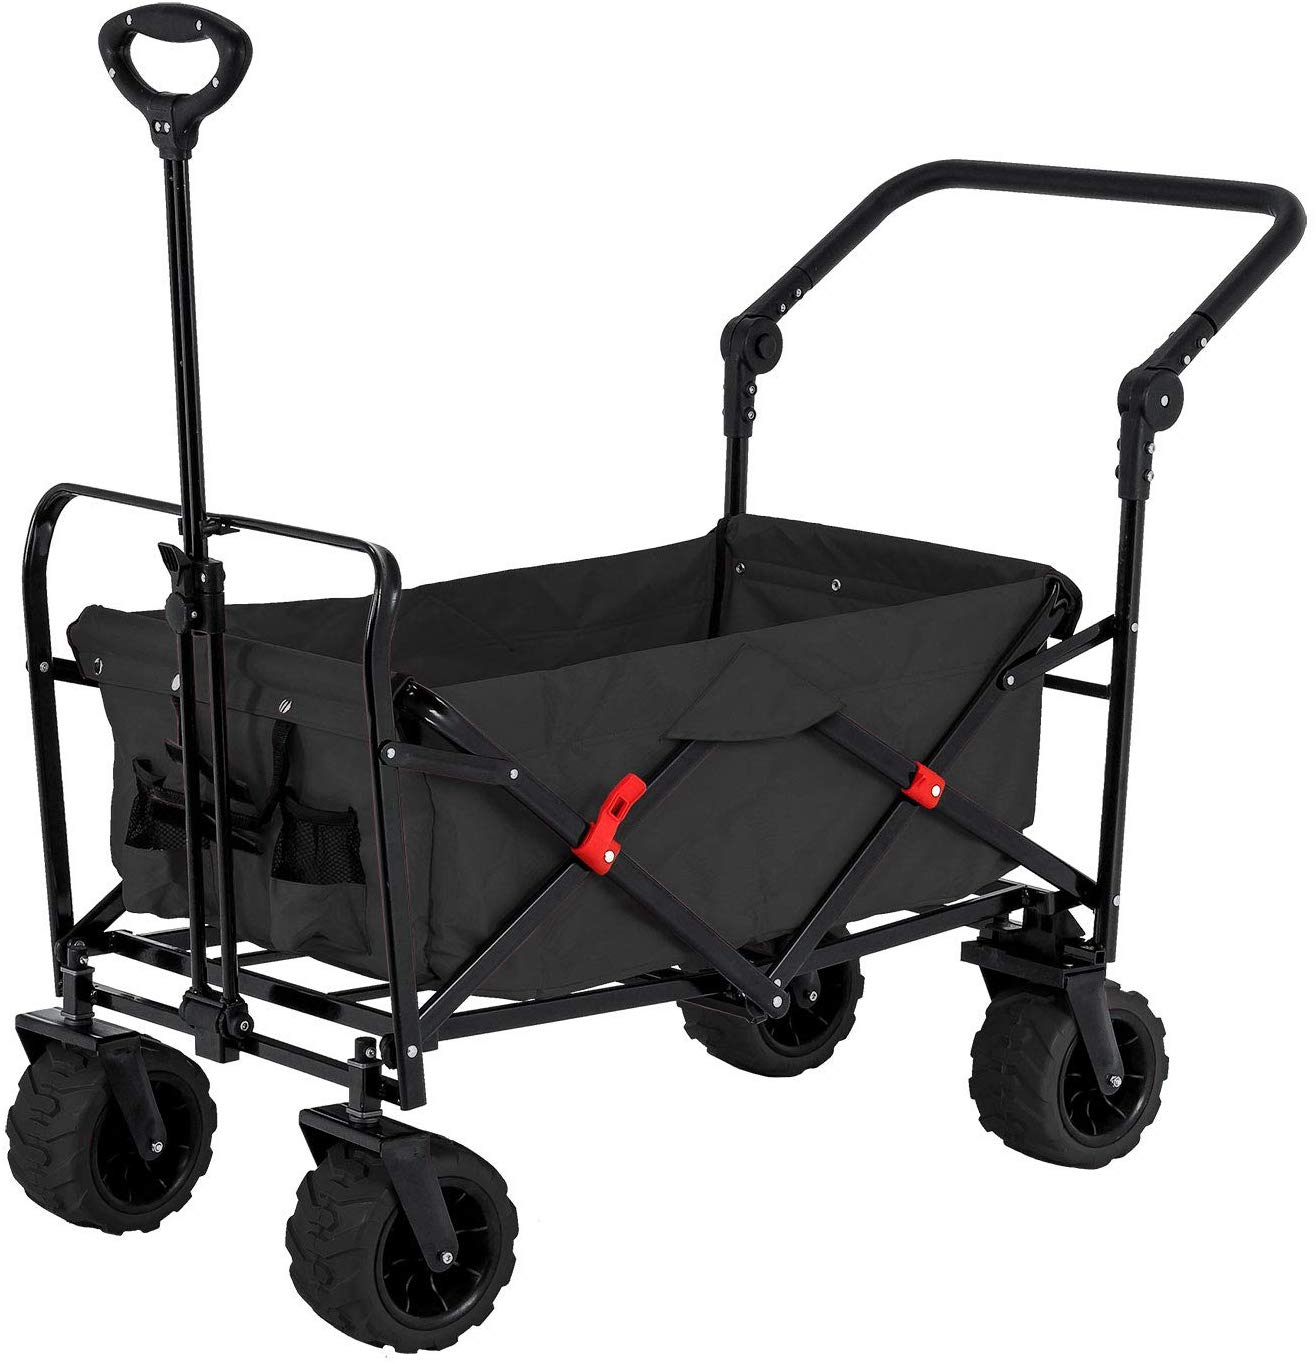 Black Wide Wheel Wagon All Terrain Folding Collapsible Utility Wagon with Push Bar - Portable Rolling Heavy Duty 265 Lb Capacity Canvas Fabric Cart Buggy